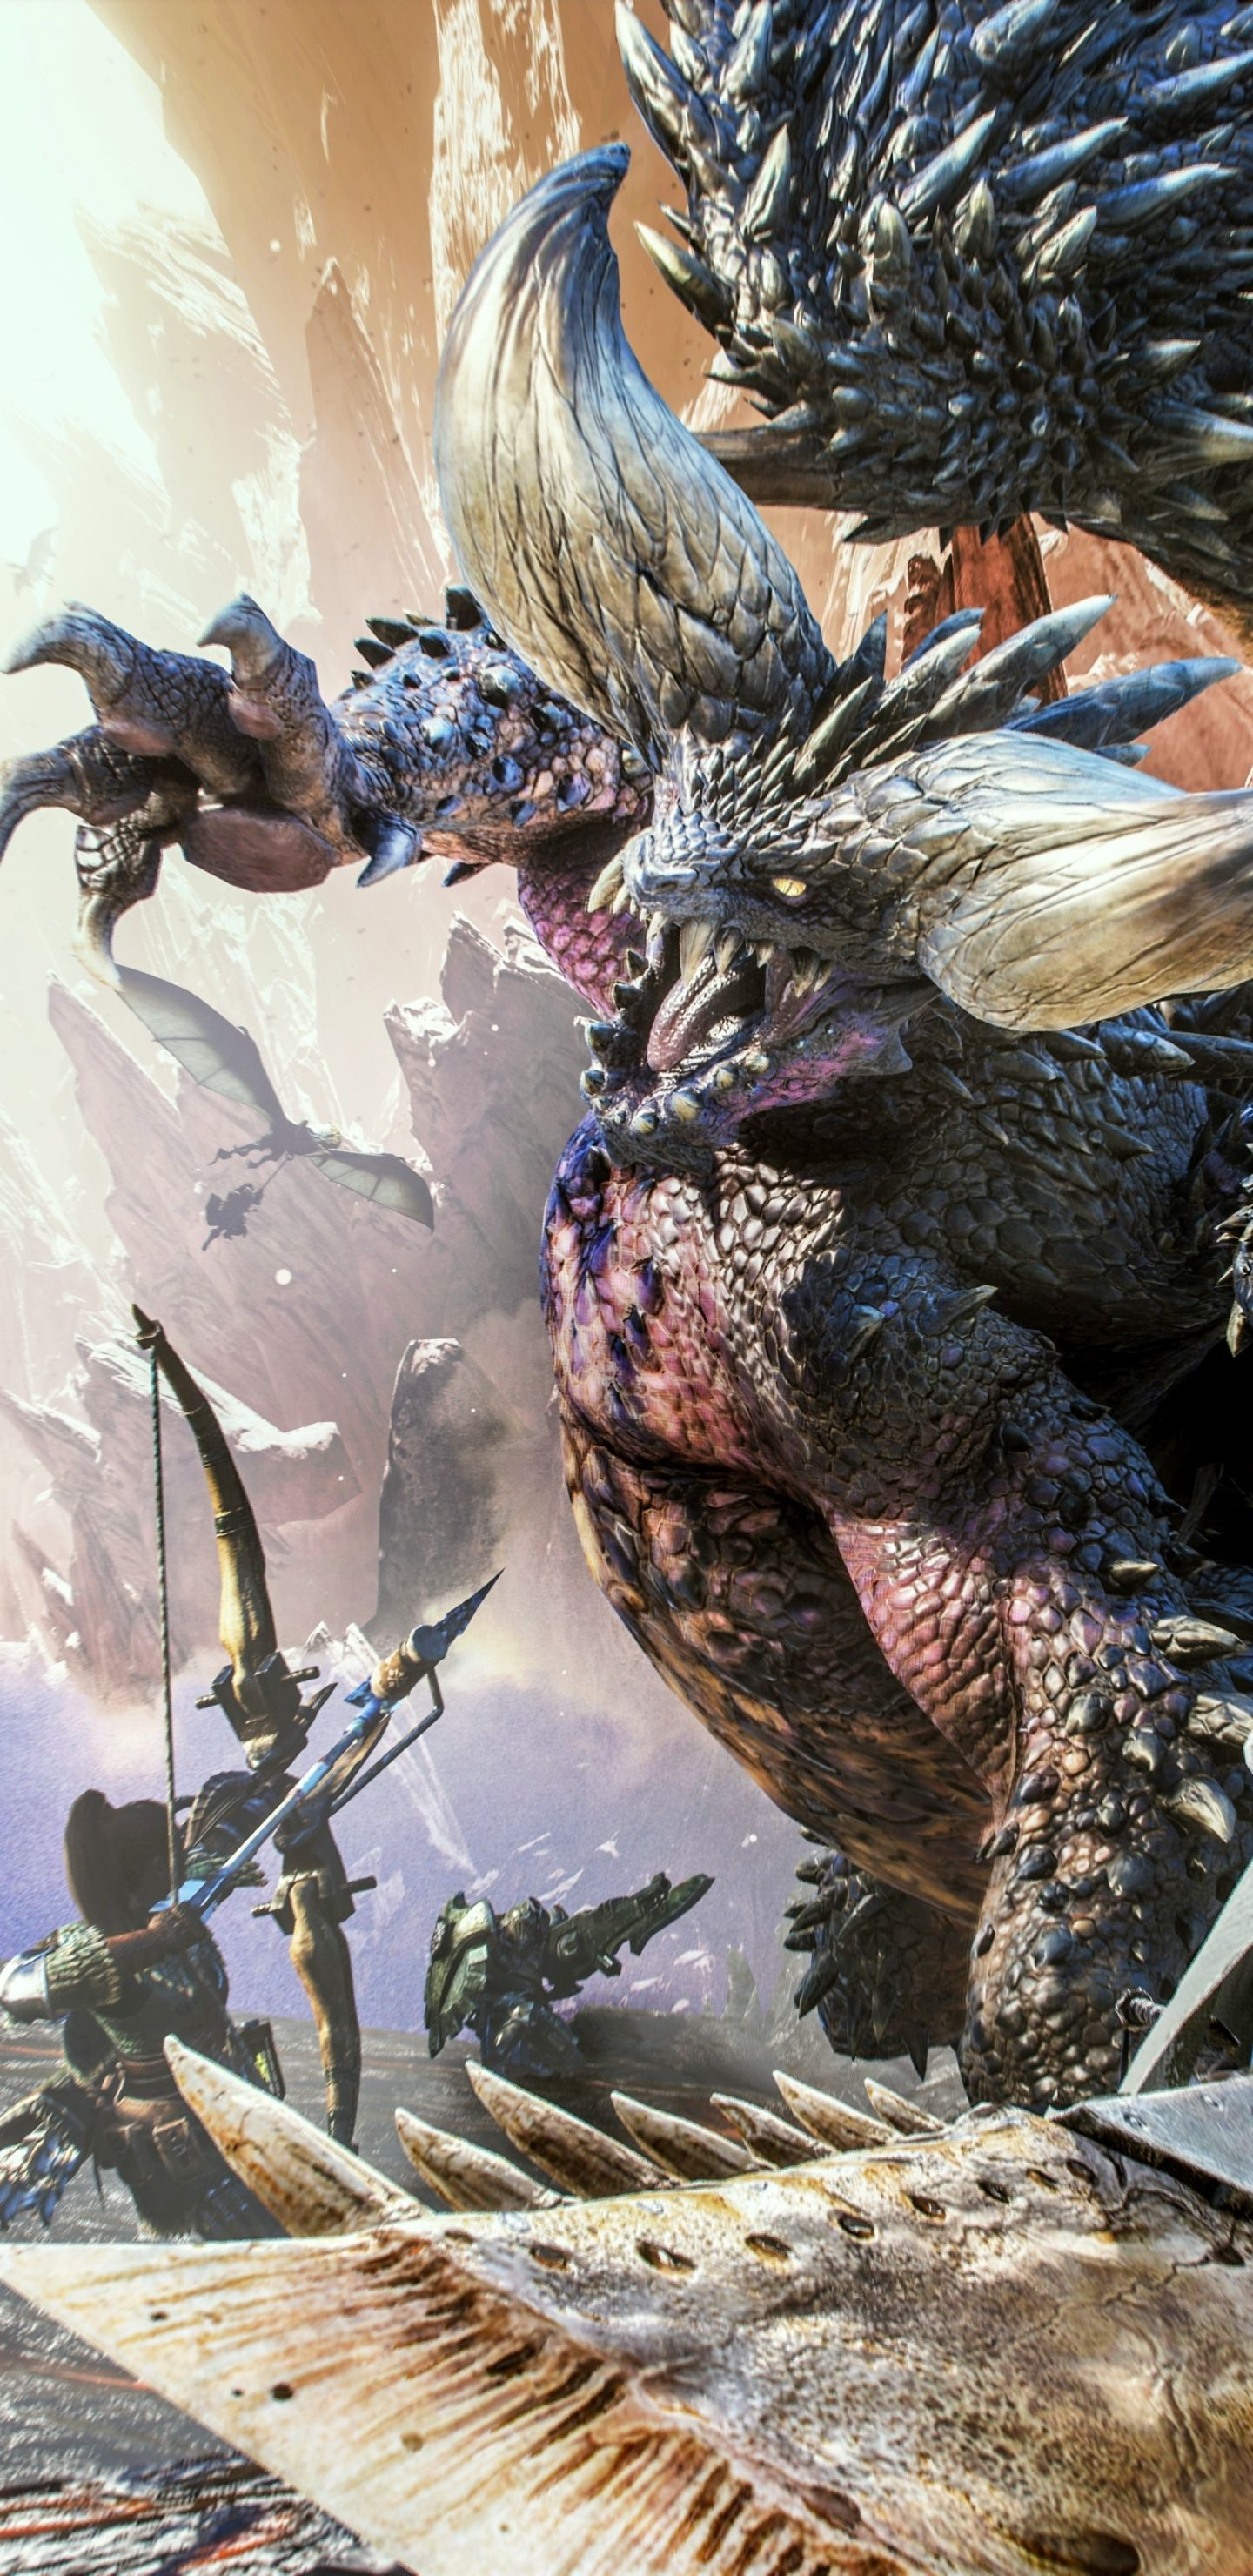 Download This Wallpaper Video Game Monster Hunter World 1440x2960 For All Your Pho Monster Hunter World Monster Hunter World Wallpaper Monster Hunter Mobile